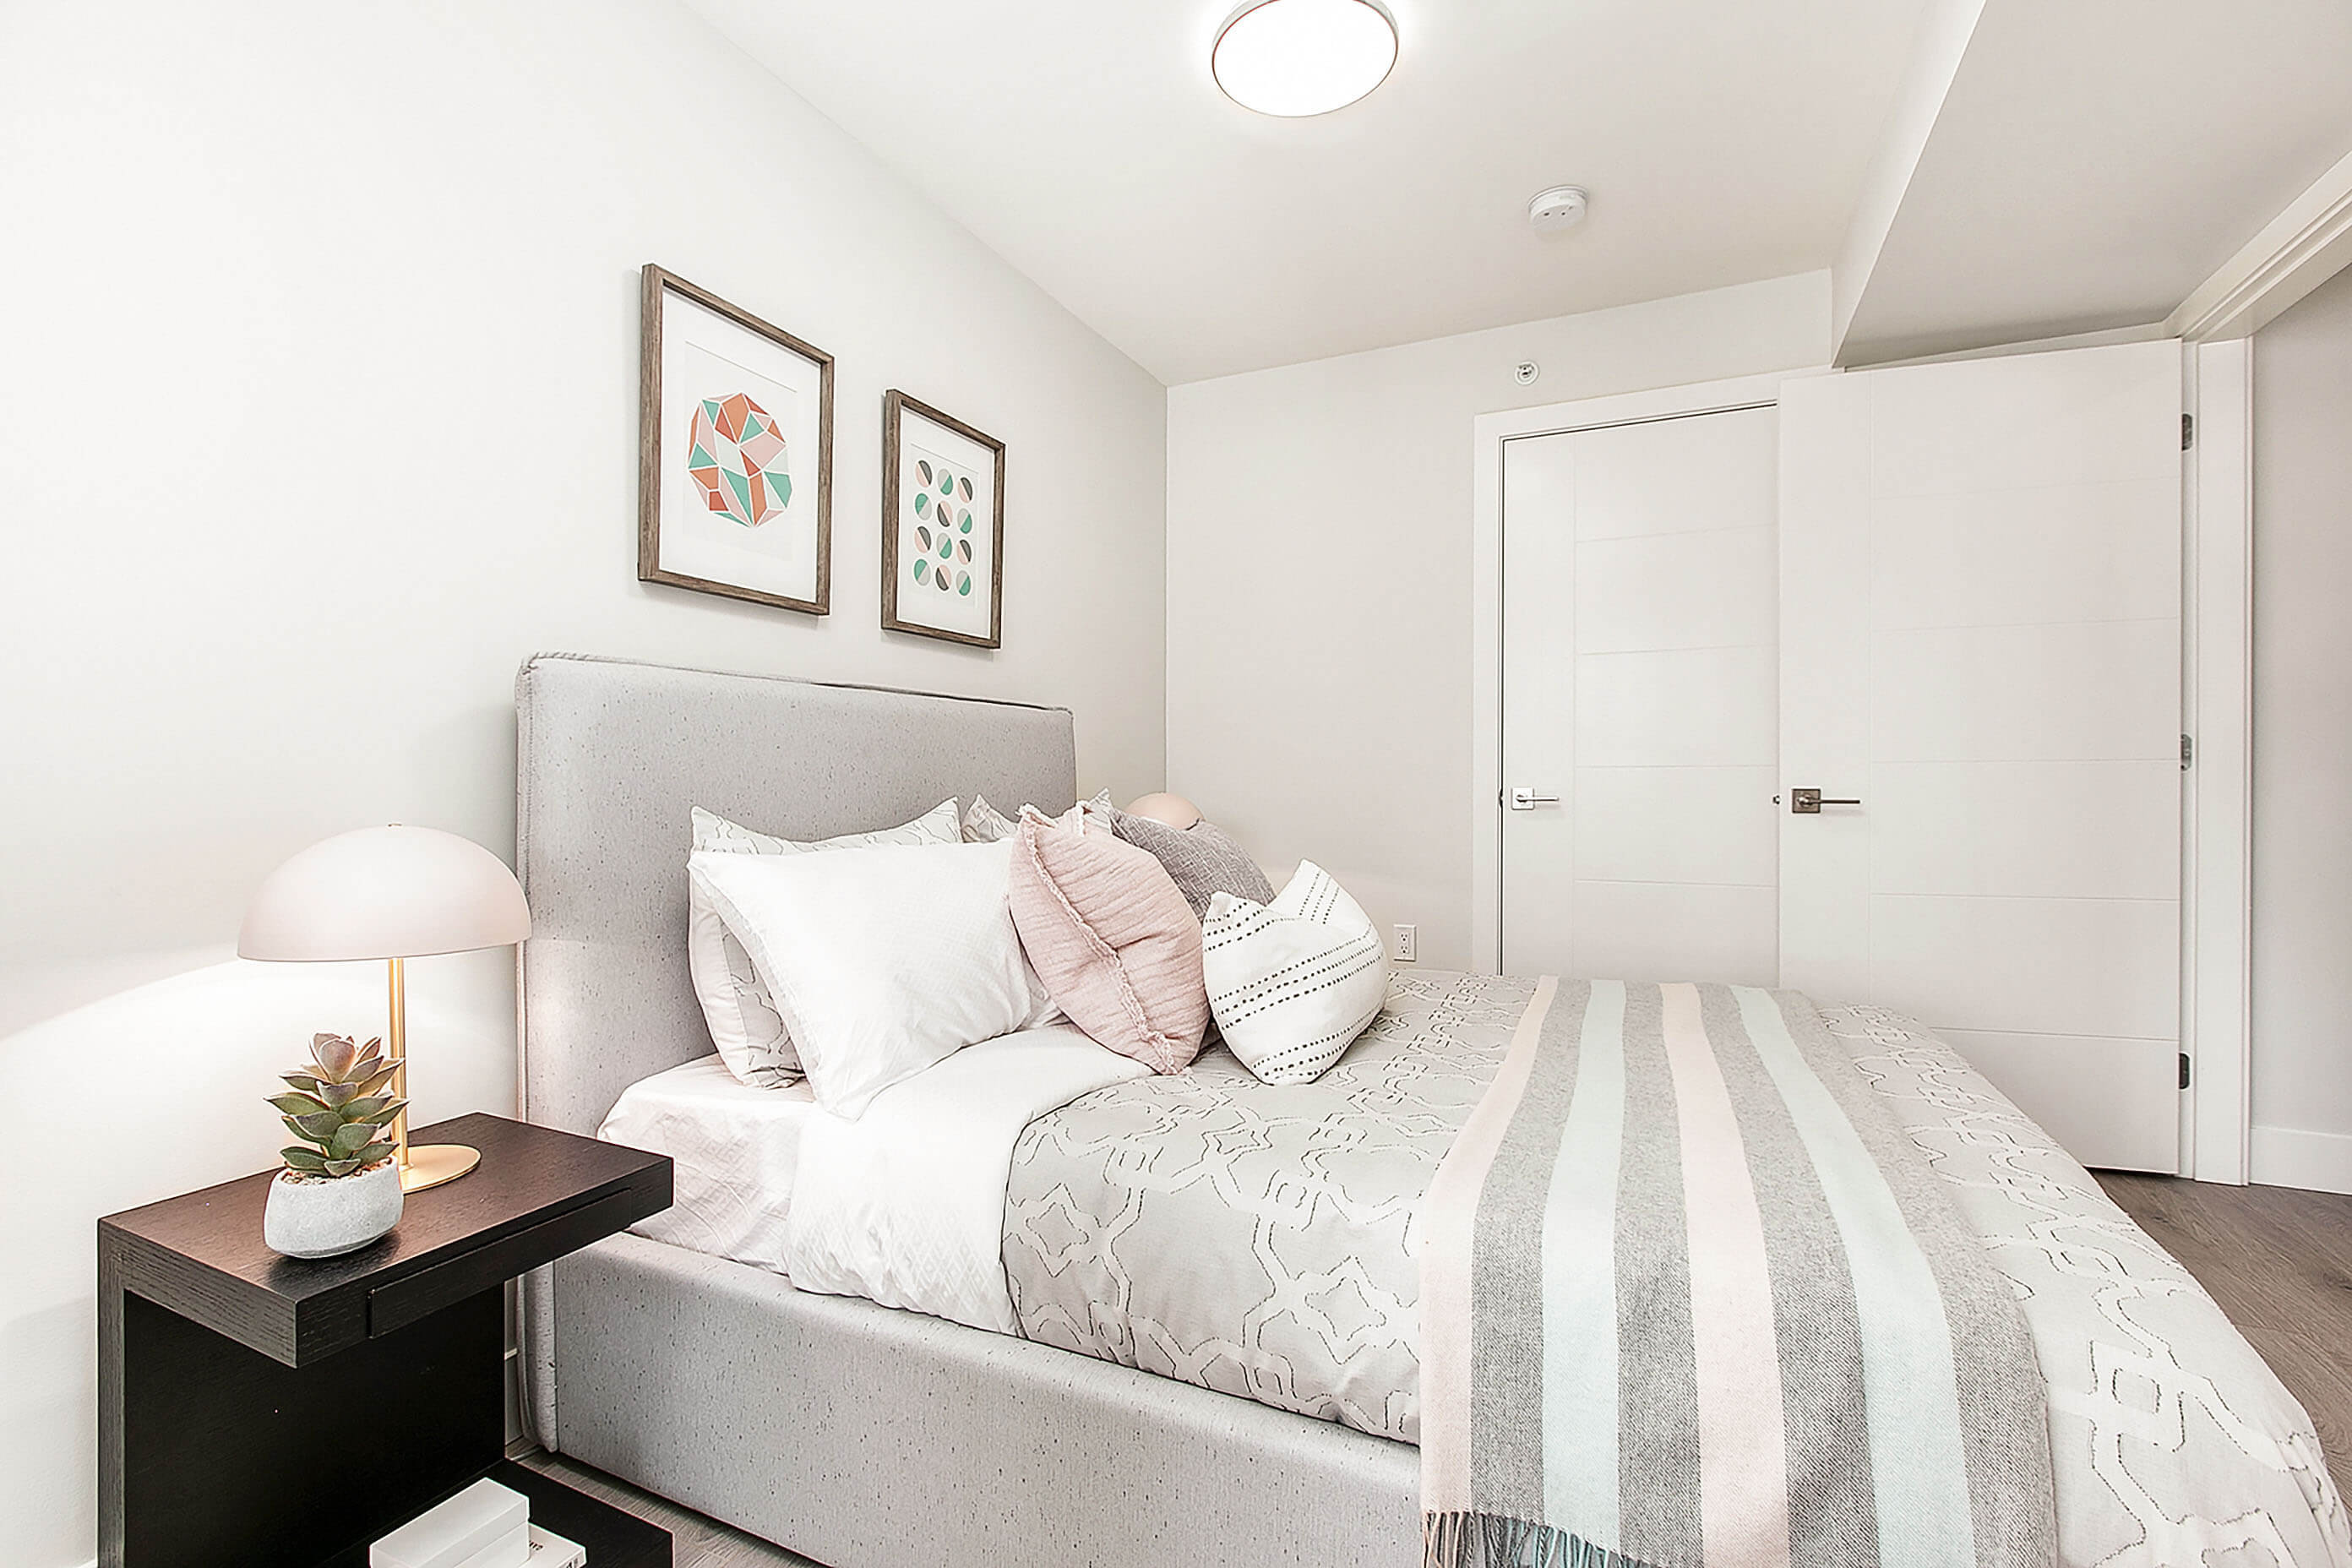 Bedroom - 2717 Horley St, Vancouver, BC V5R 4R7, Canada!